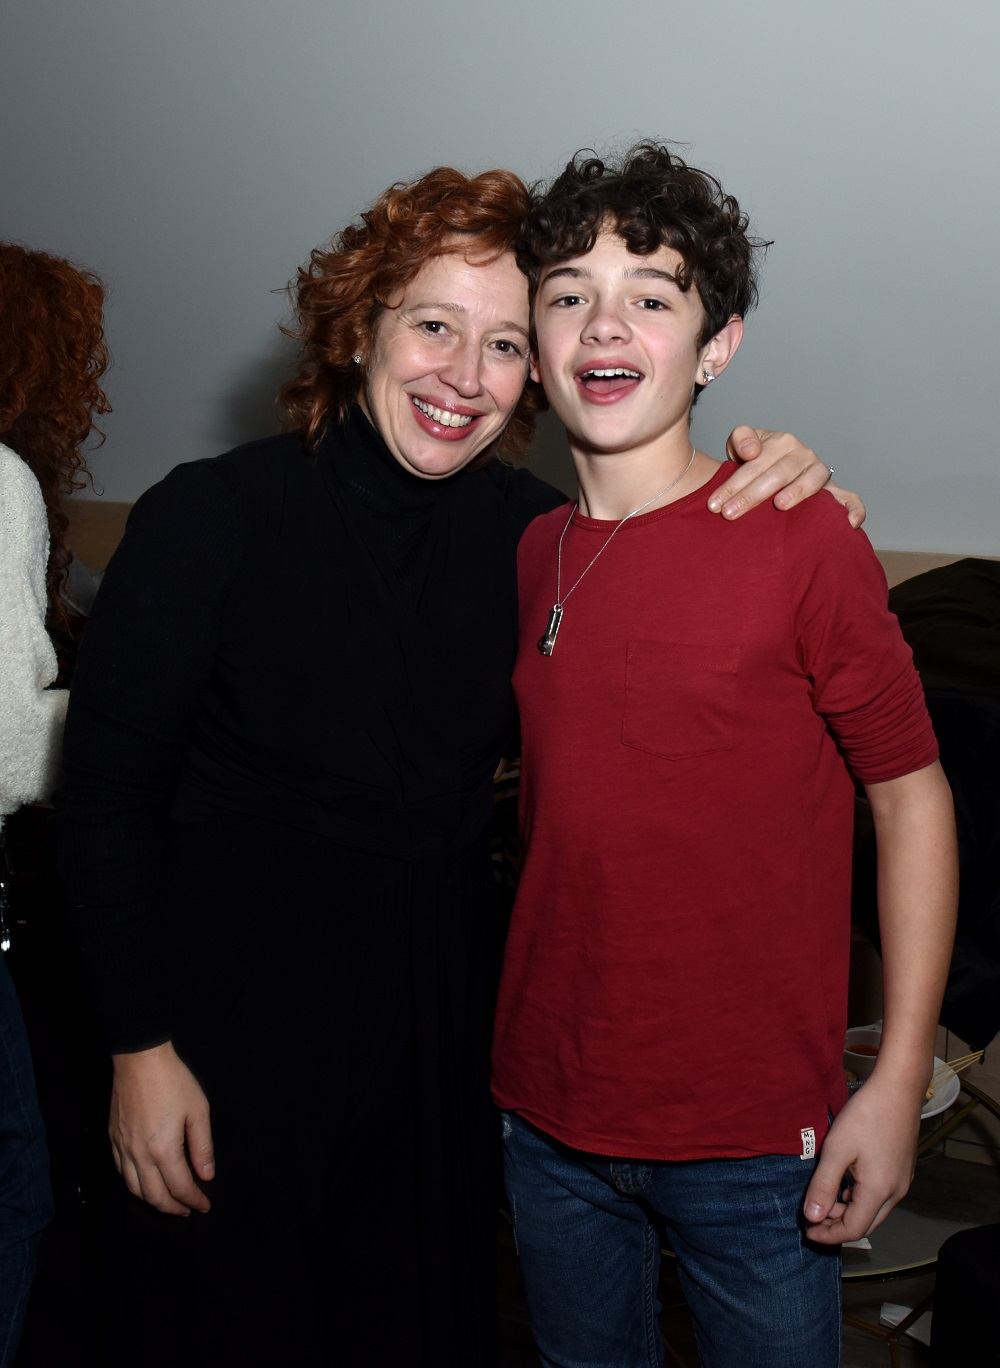 Katy Cavanagh (L) and Noah Jupe